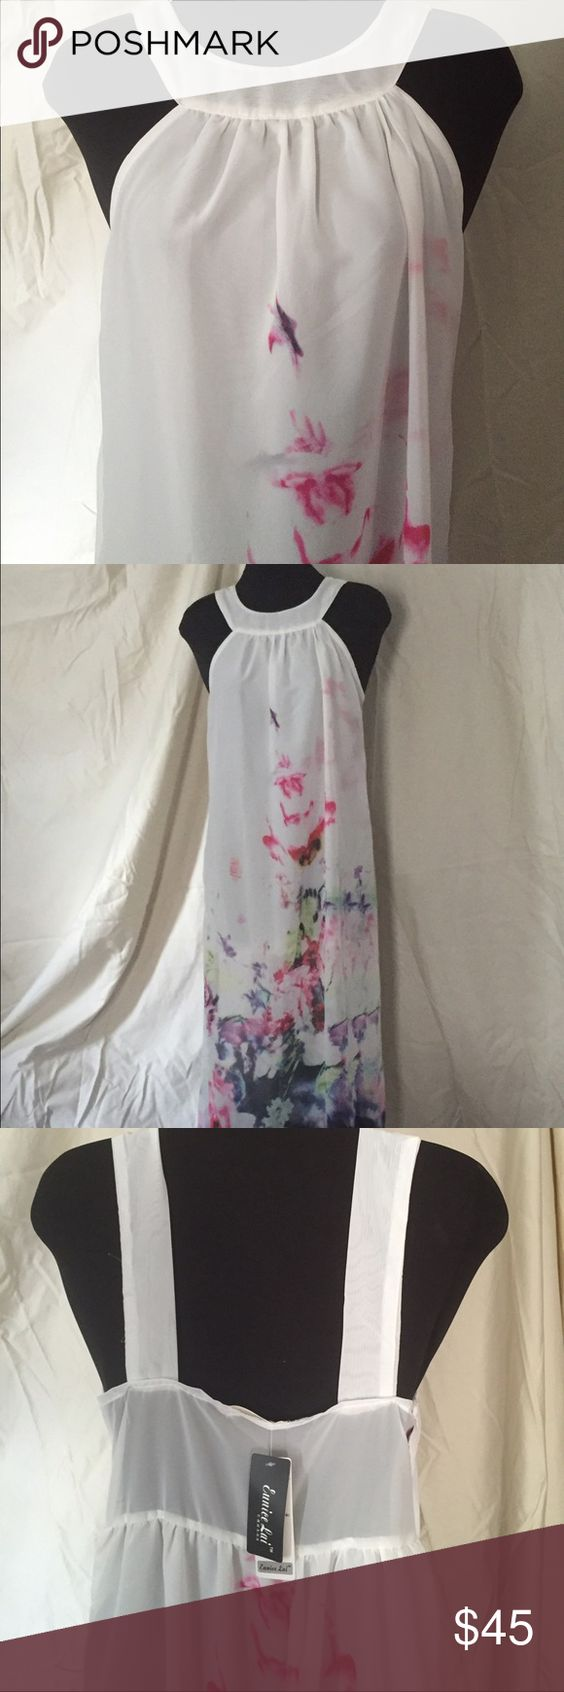 Floral maxi dress! Soft and flowing floral maxi dress with underdress. This is gorgeous but I haven't had occasion to wear it. It is new with tags. Dresses Maxi